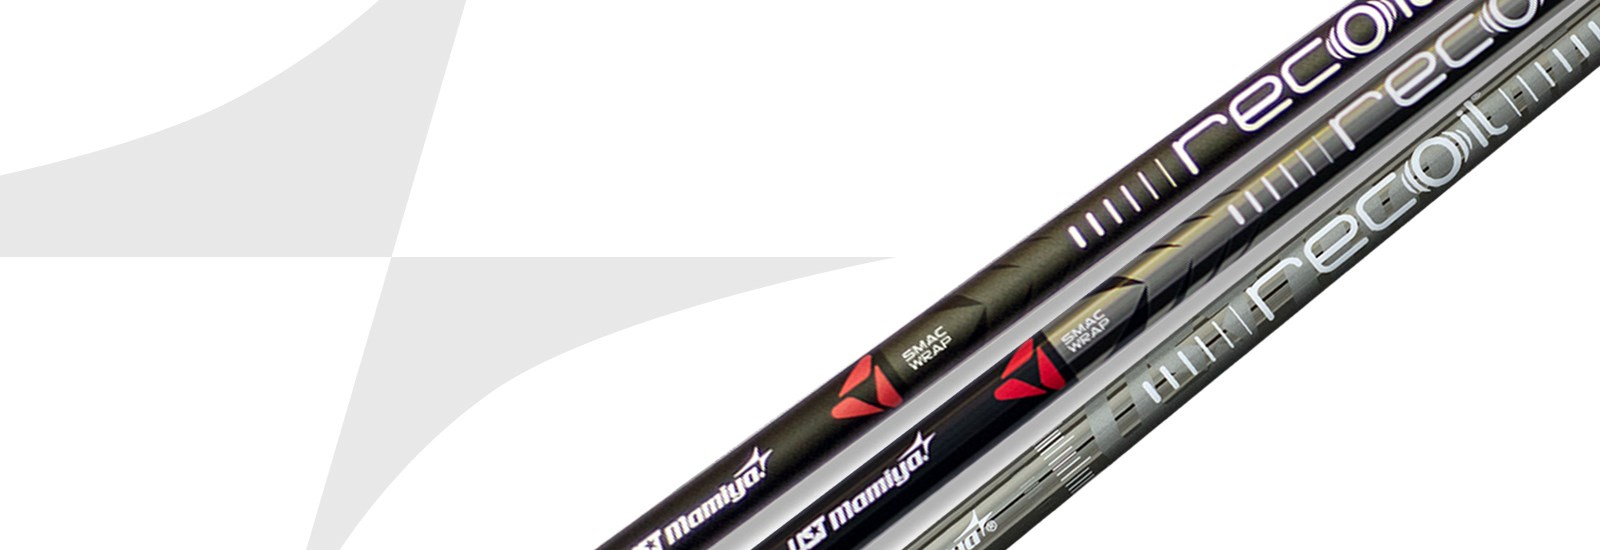 UST Mamiya Recoil Wood and Iron Golf Shafts